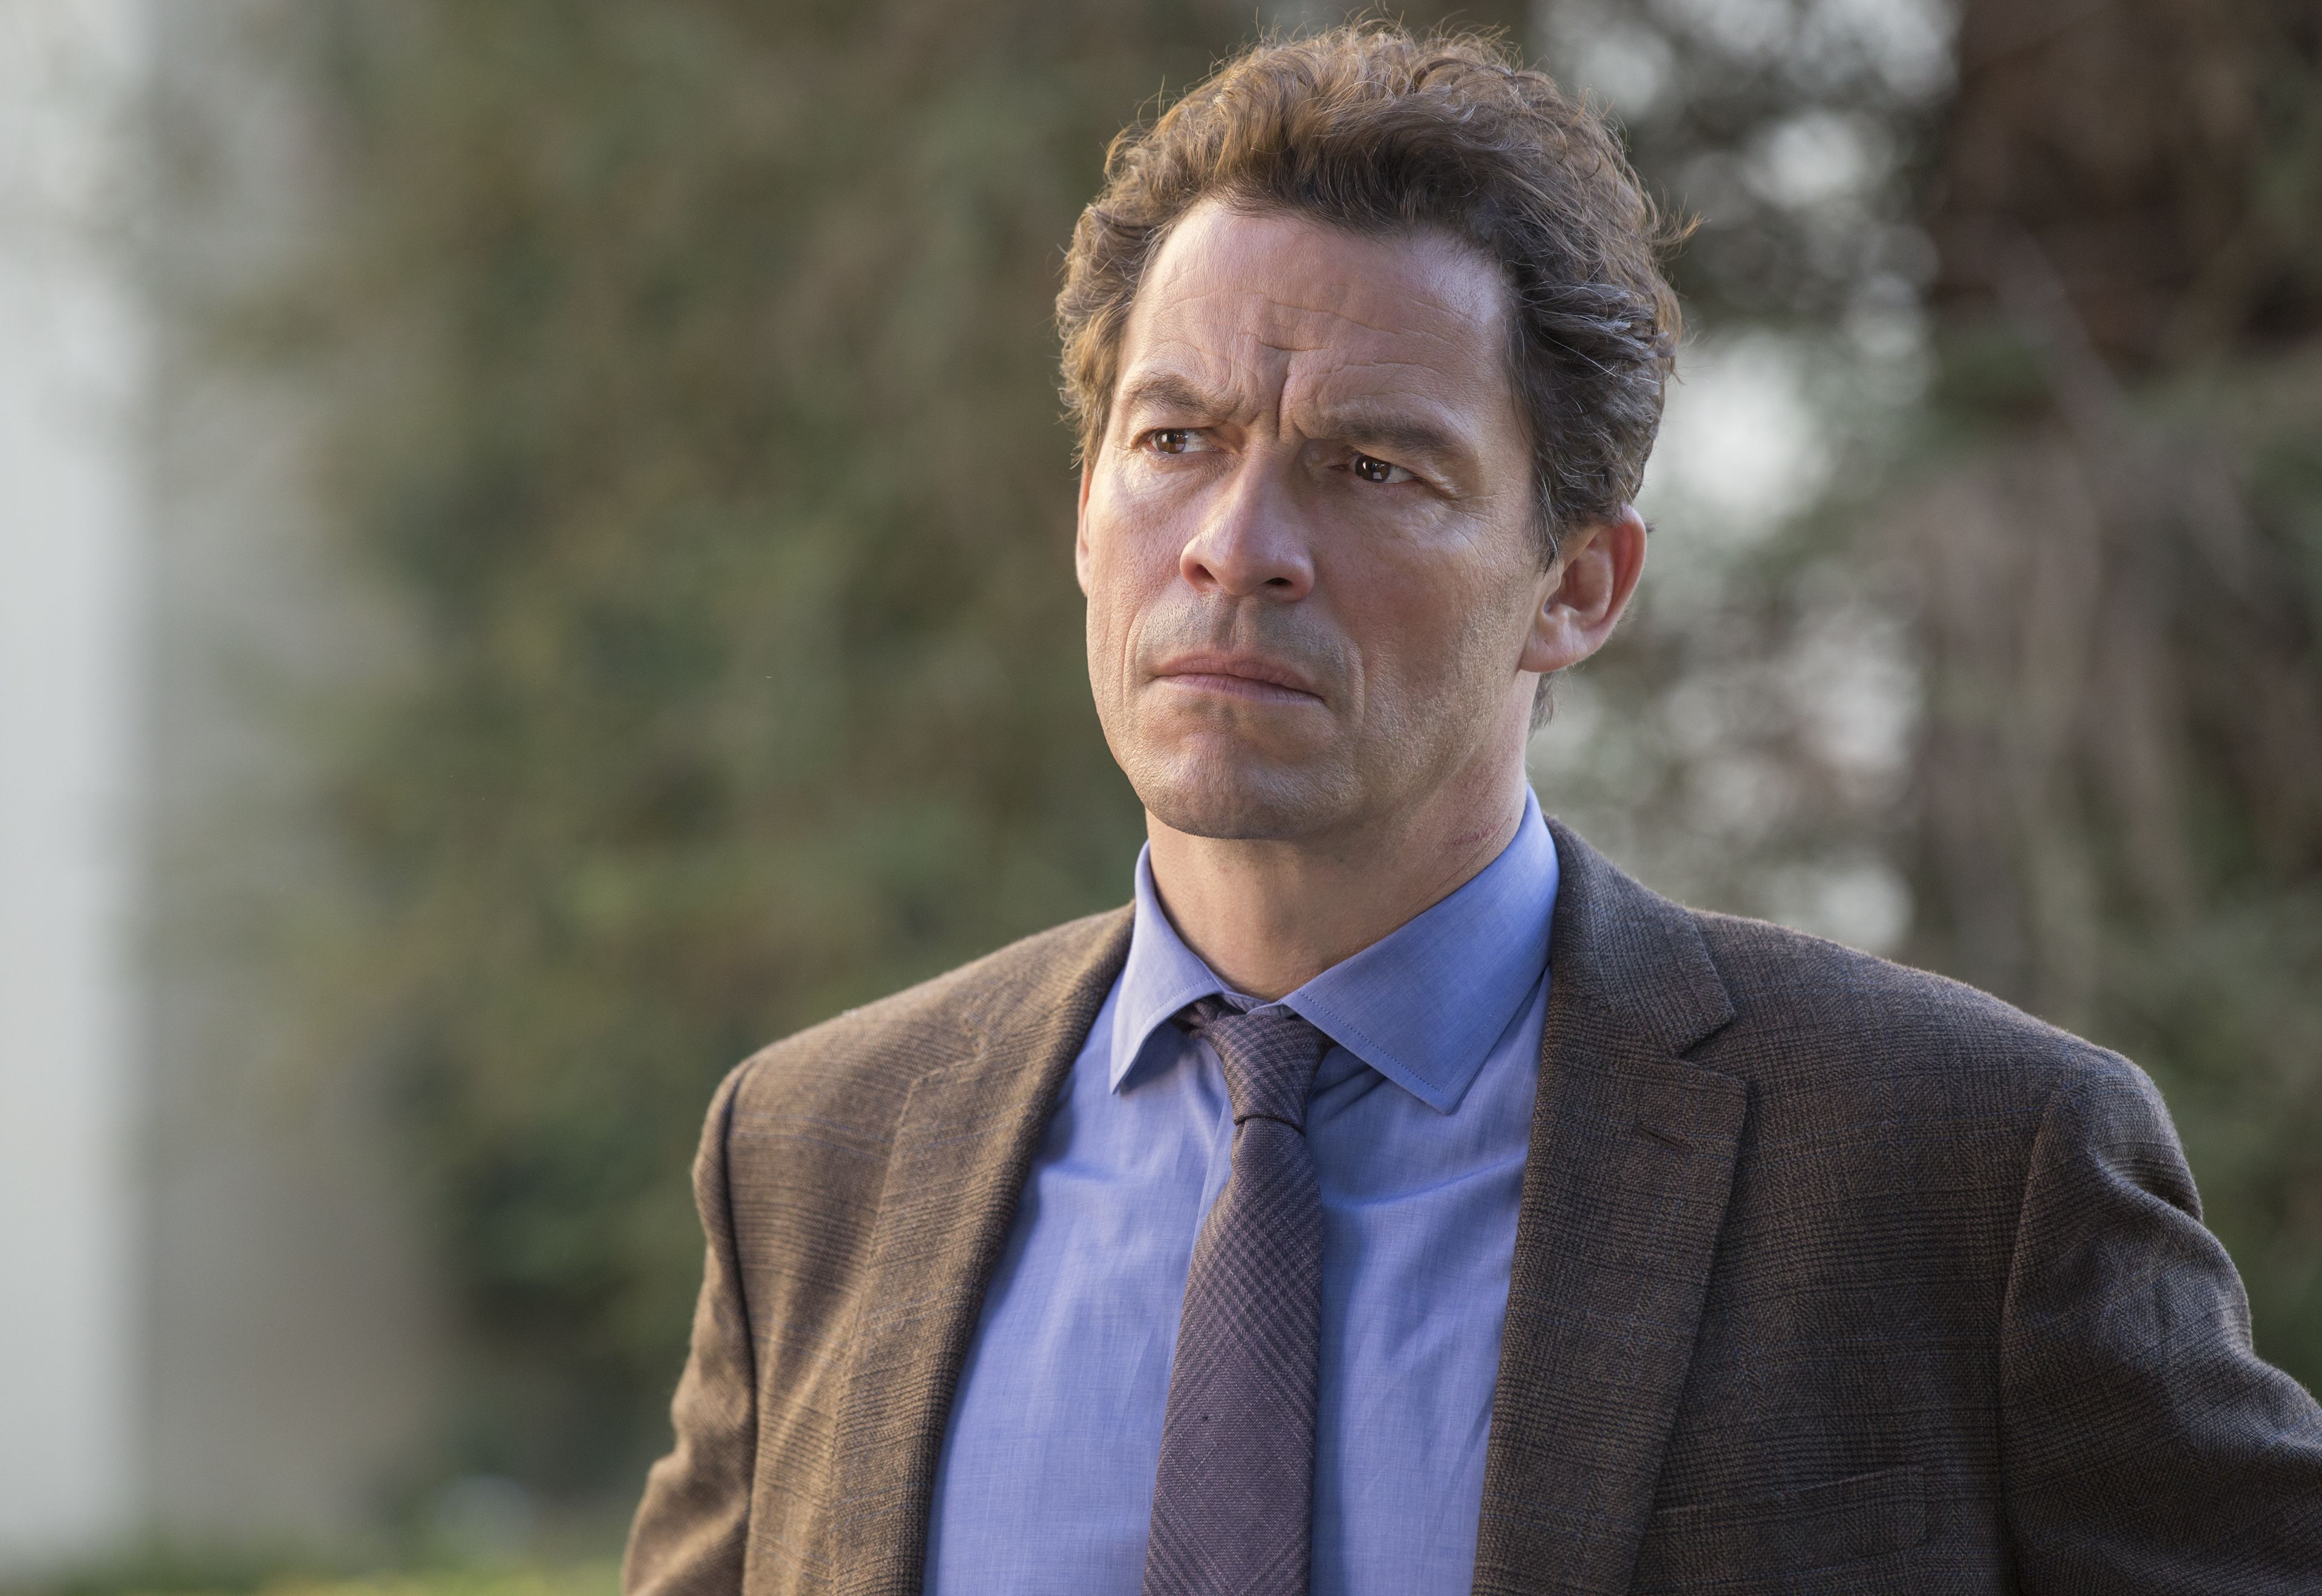 The Affair season 20 will see the emotional return of former star